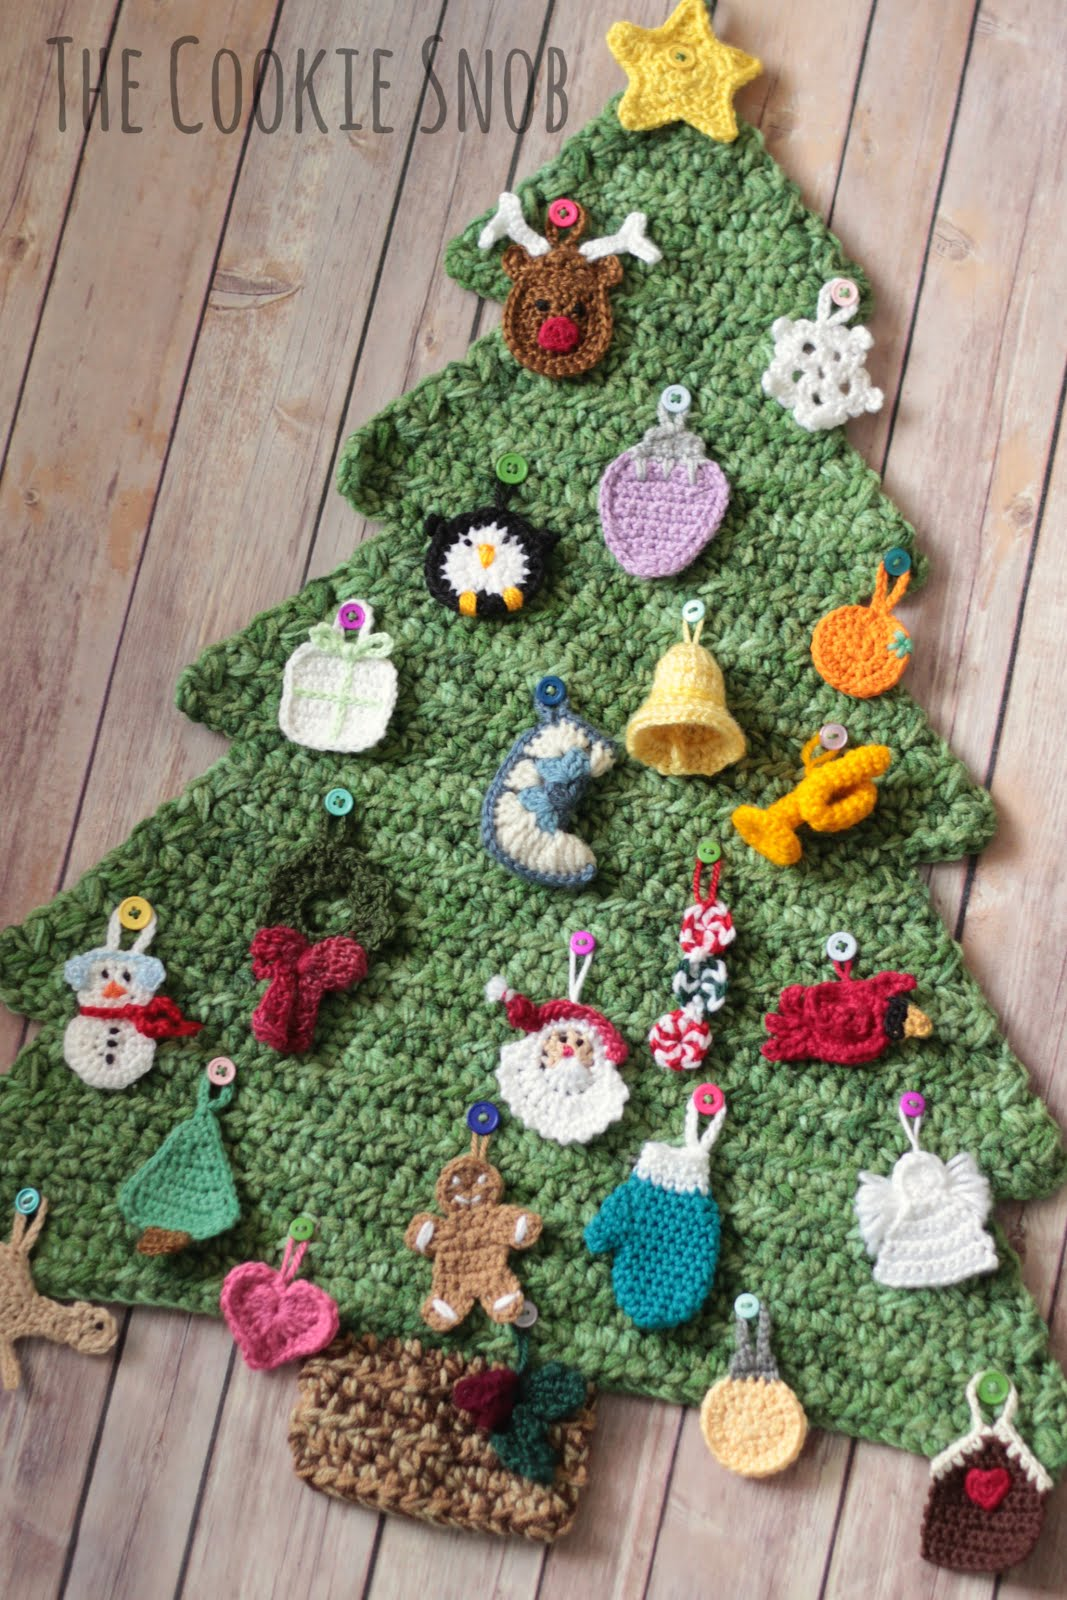 12 Weeks of Christmas Crochet Projects